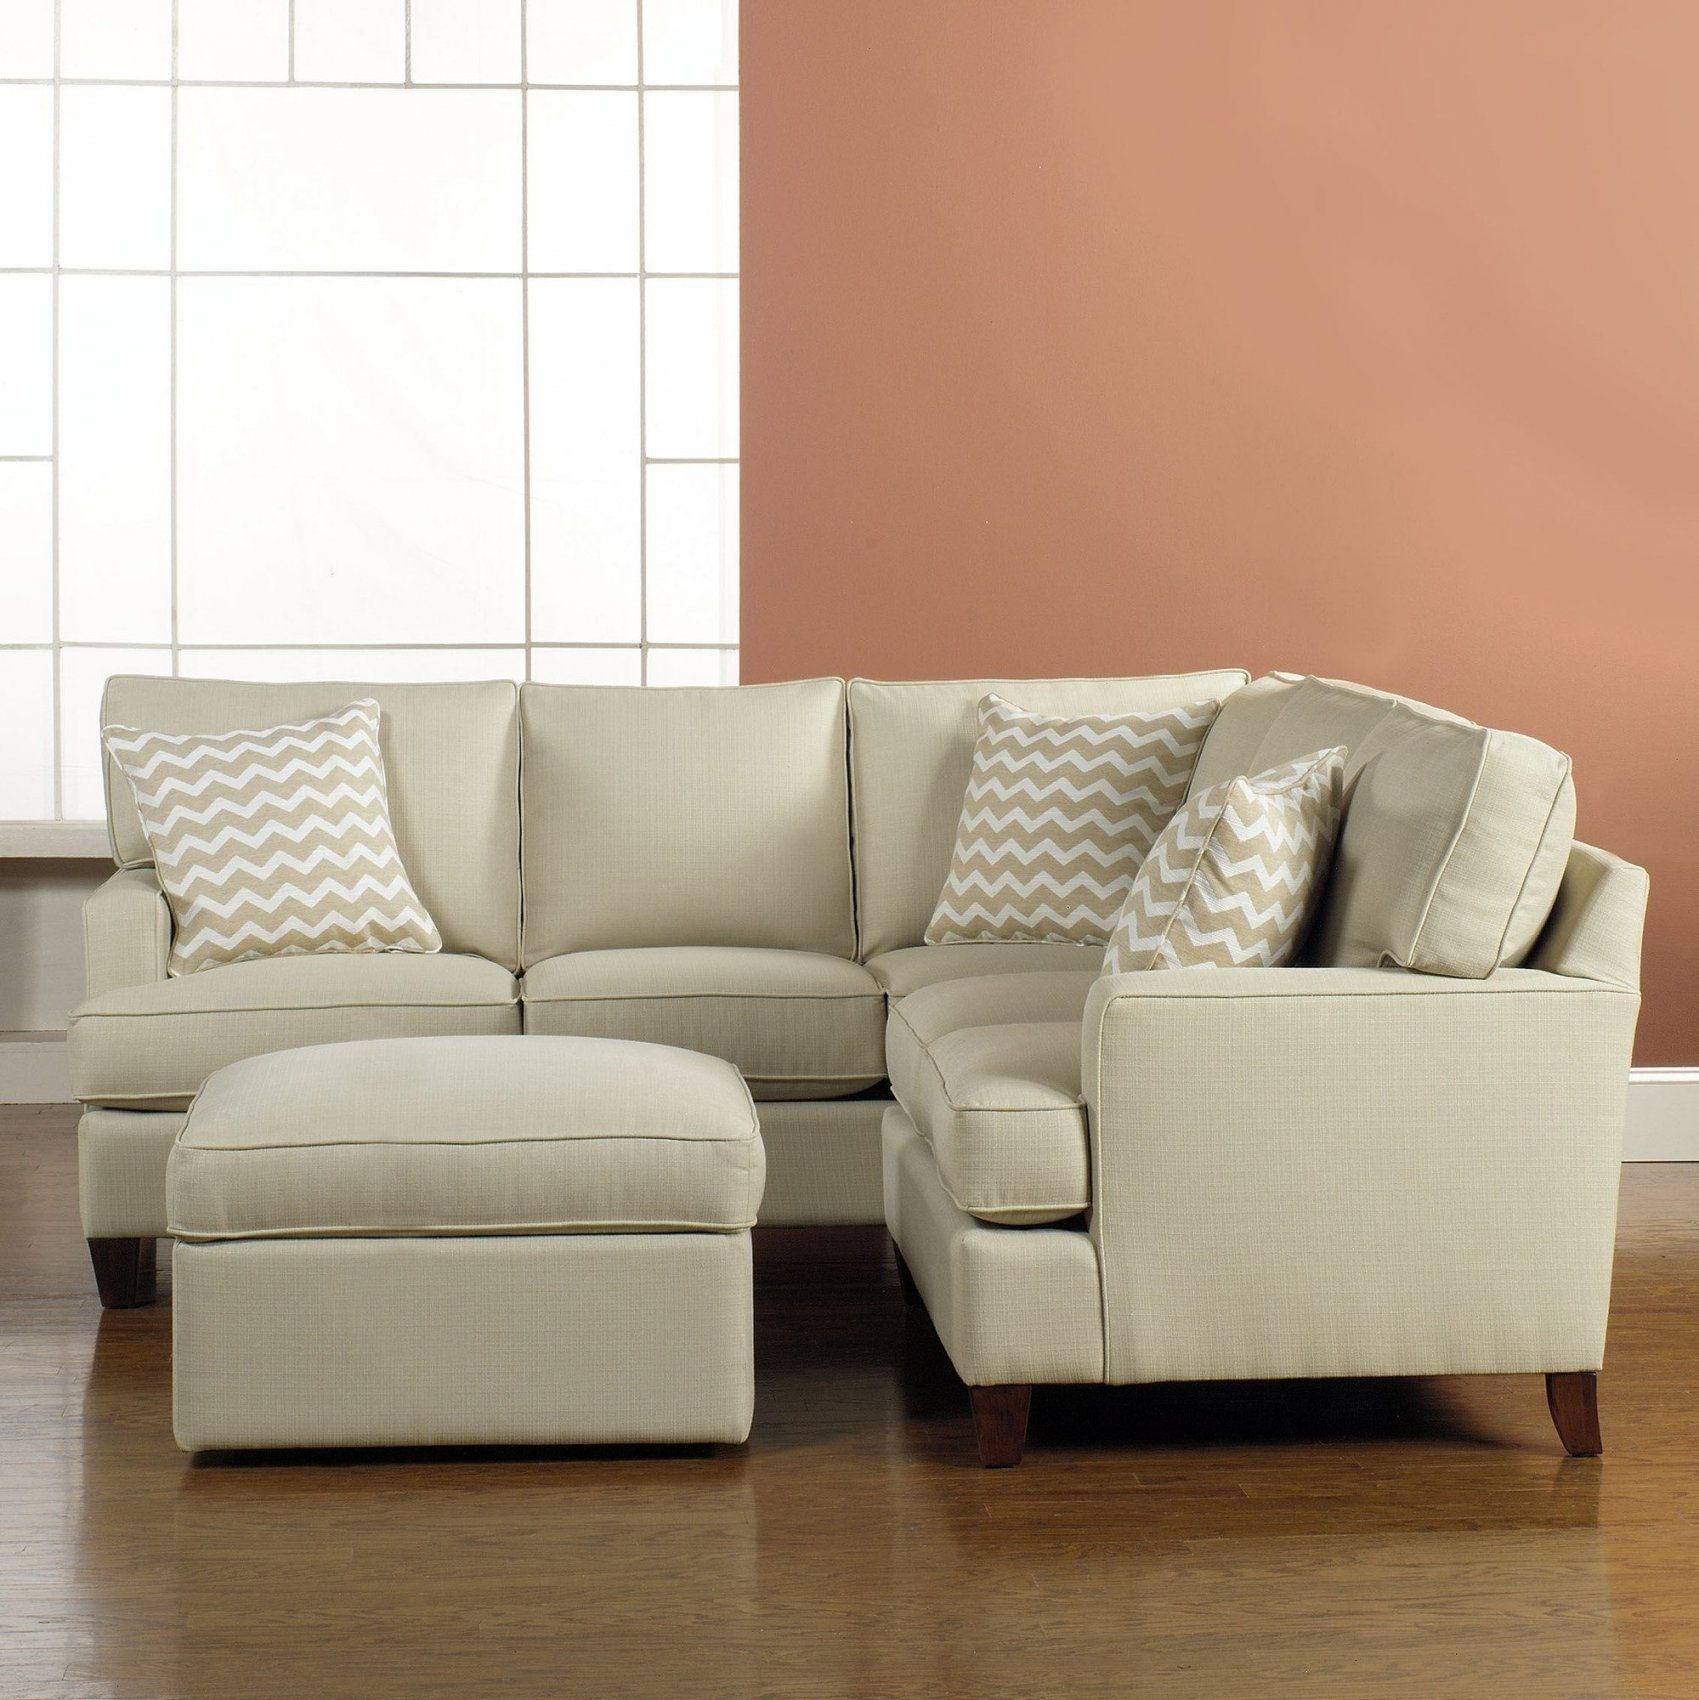 Narrow Es Sectional Sofas In 2019 Corner